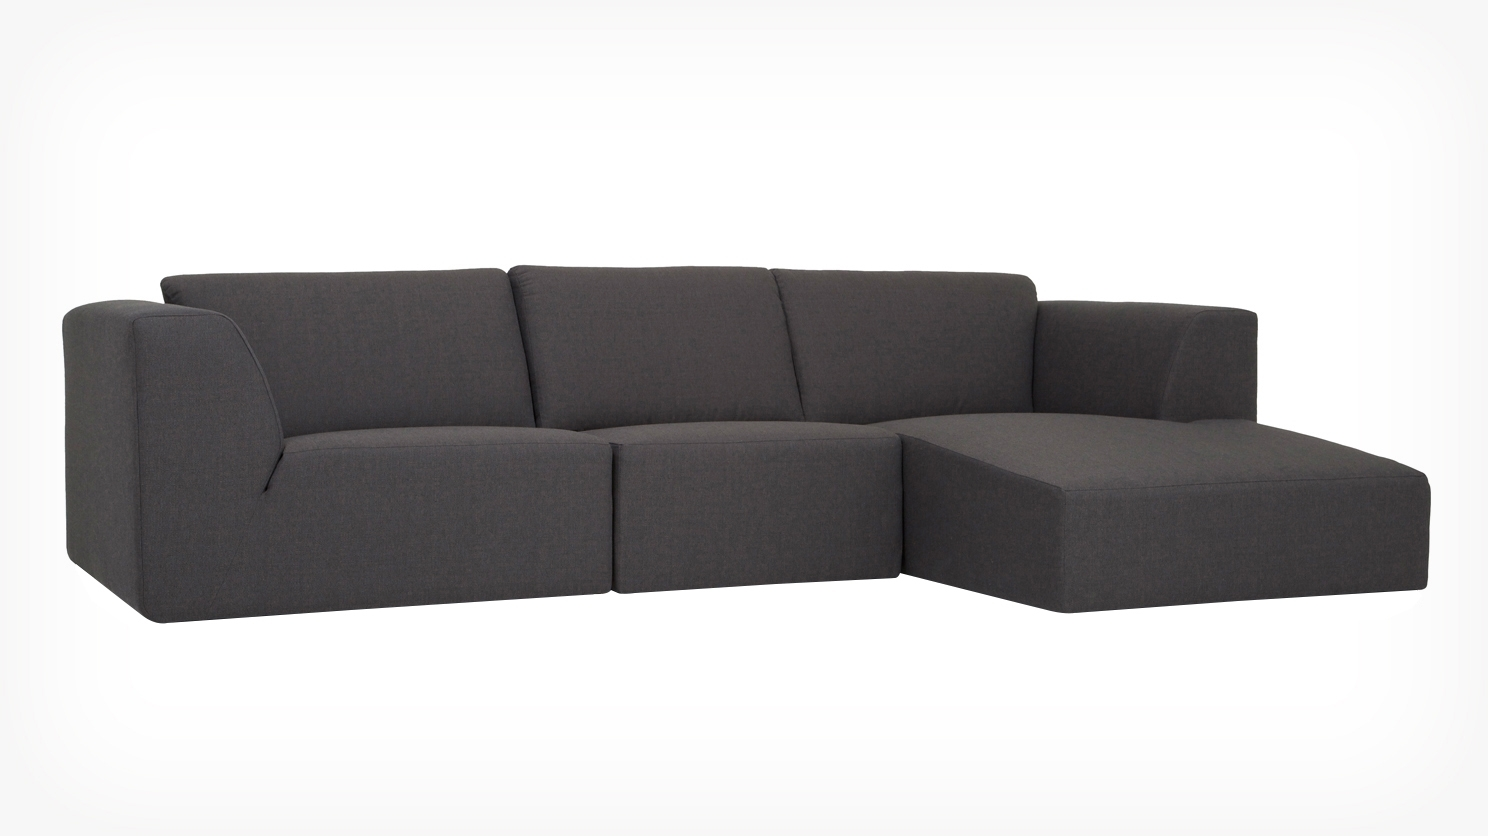 Living > Seating > Sectionals Within Well Liked Eq3 Sectional Sofas (View 6 of 20)